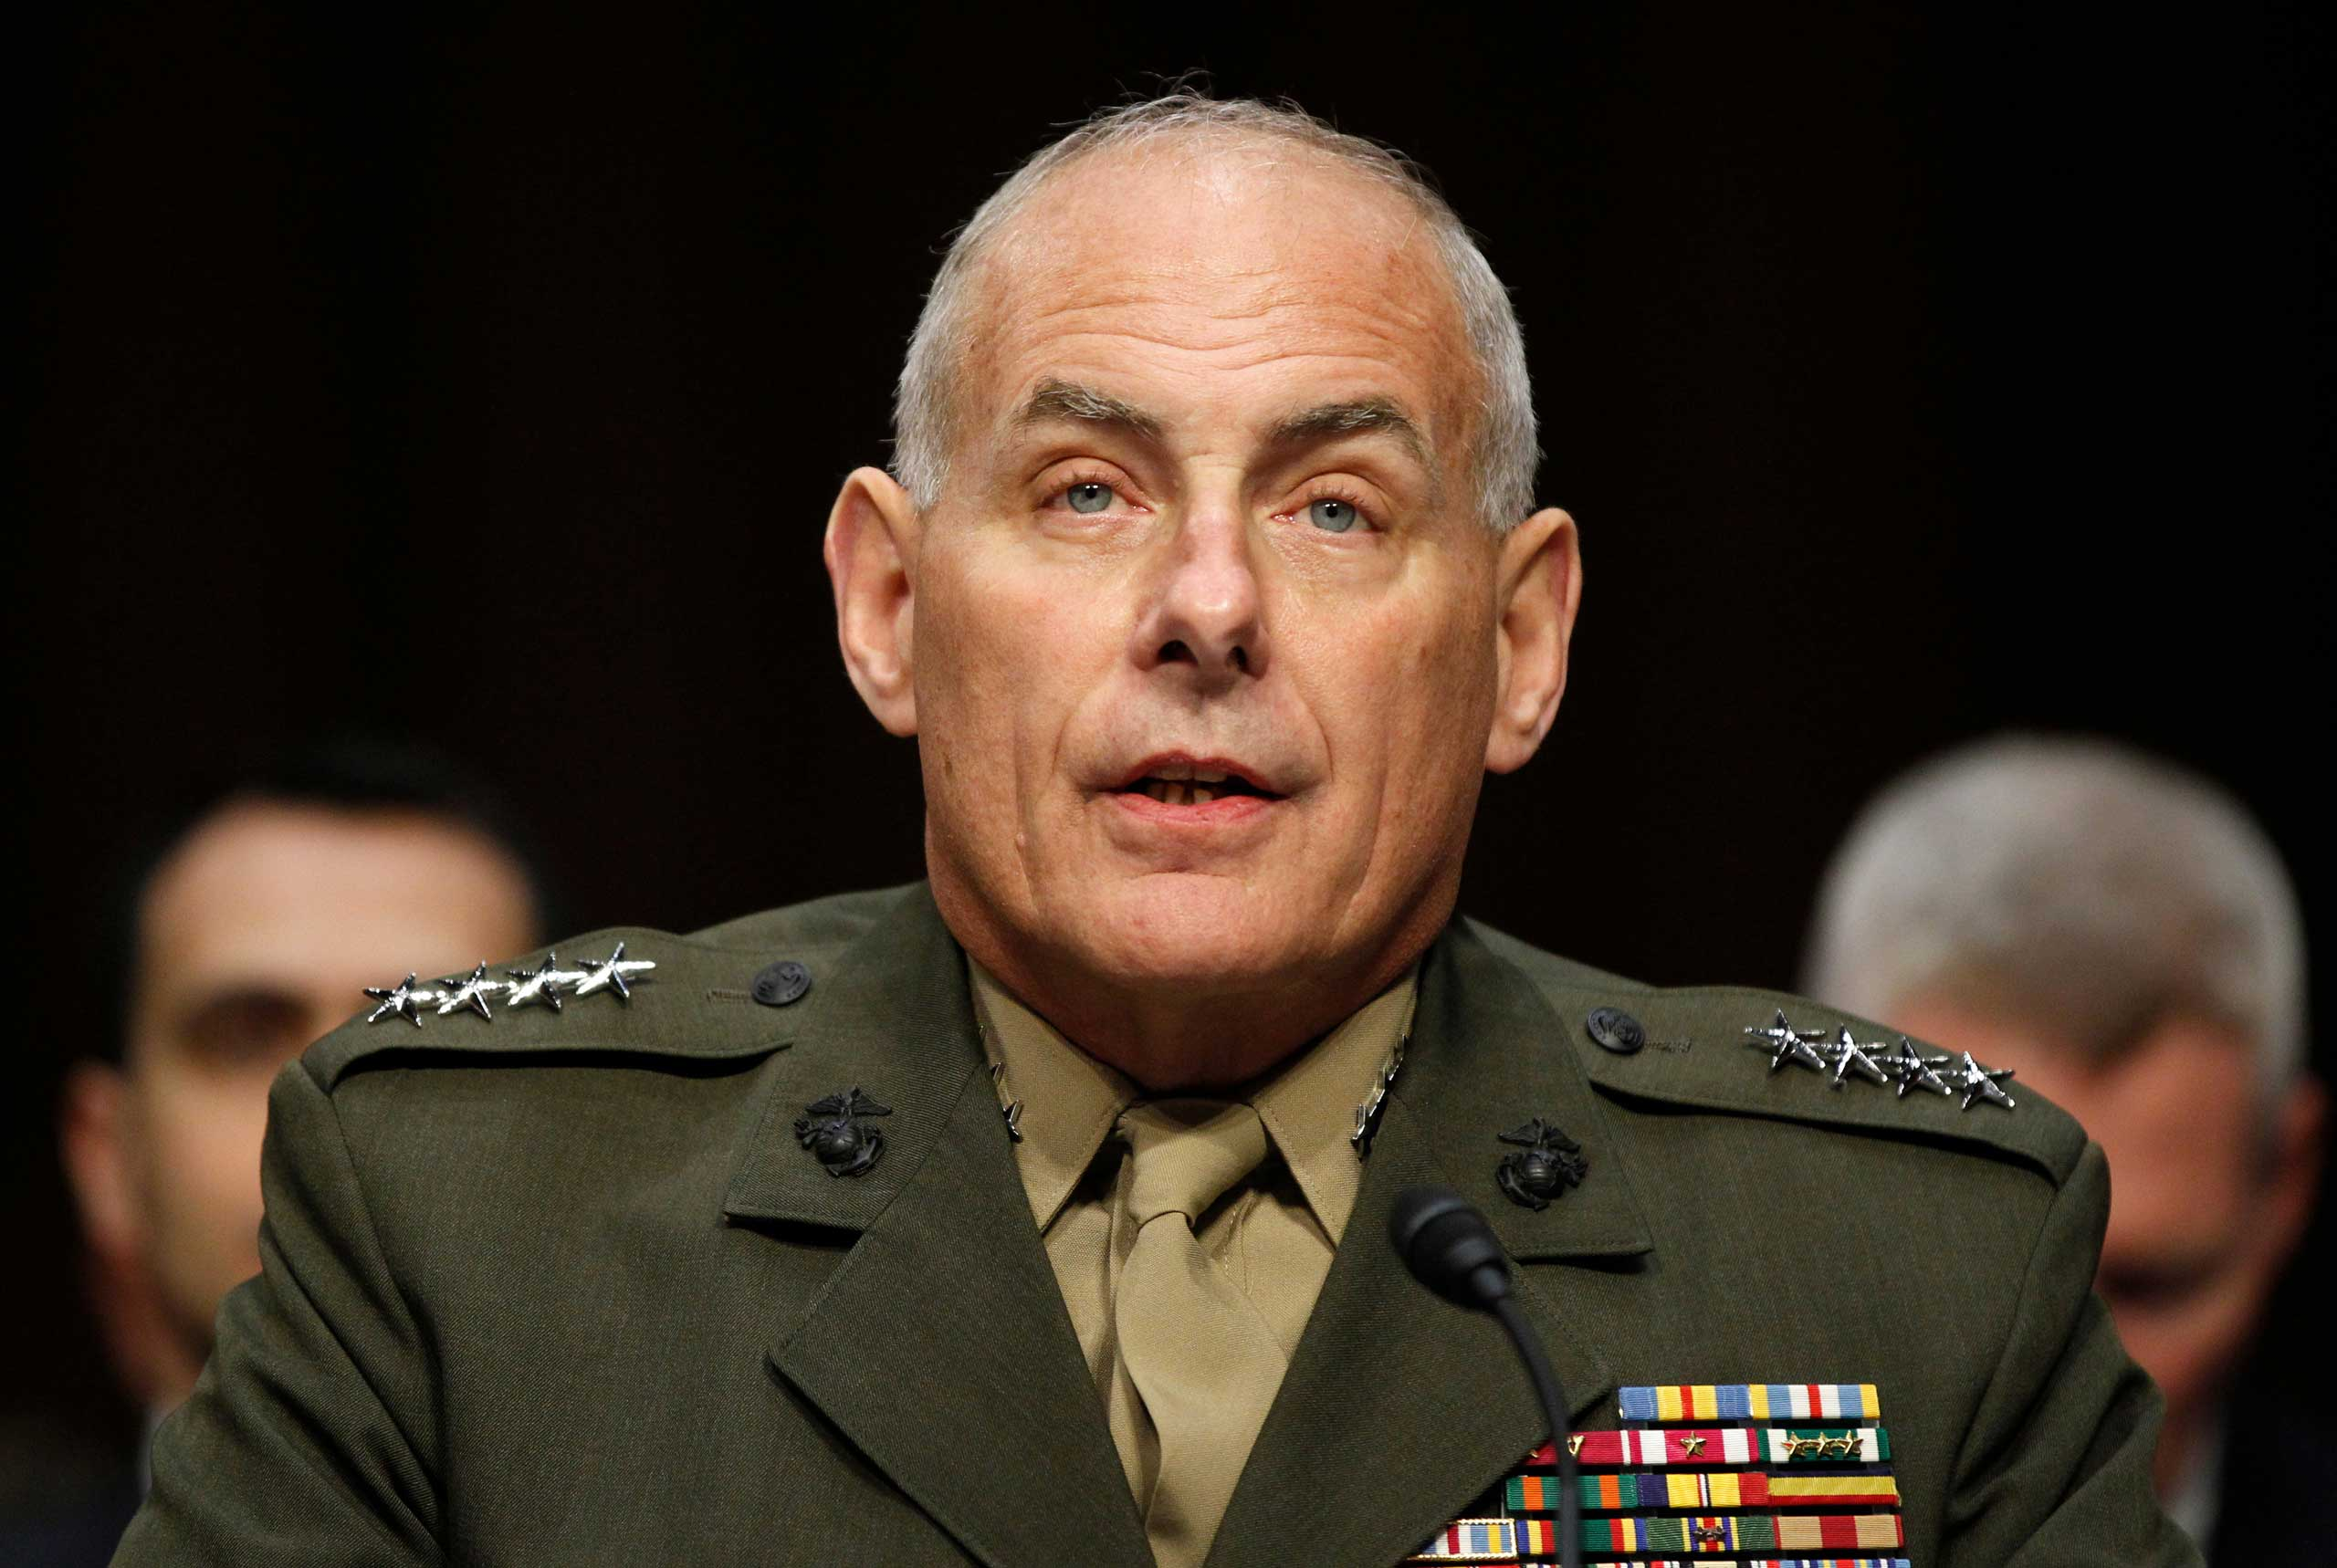 US Marine Gen. John F. Kelly, commander, U.S. Southern Command testifies on Capitol Hill in Washington, Tuesday, March 19, 2013, before the Senate Armed Services Committee hearing on U.S. European Command, U.S. Northern Command, and U.S. Southern Command in review of the Defense Authorization Request for Fiscal Year 2014.